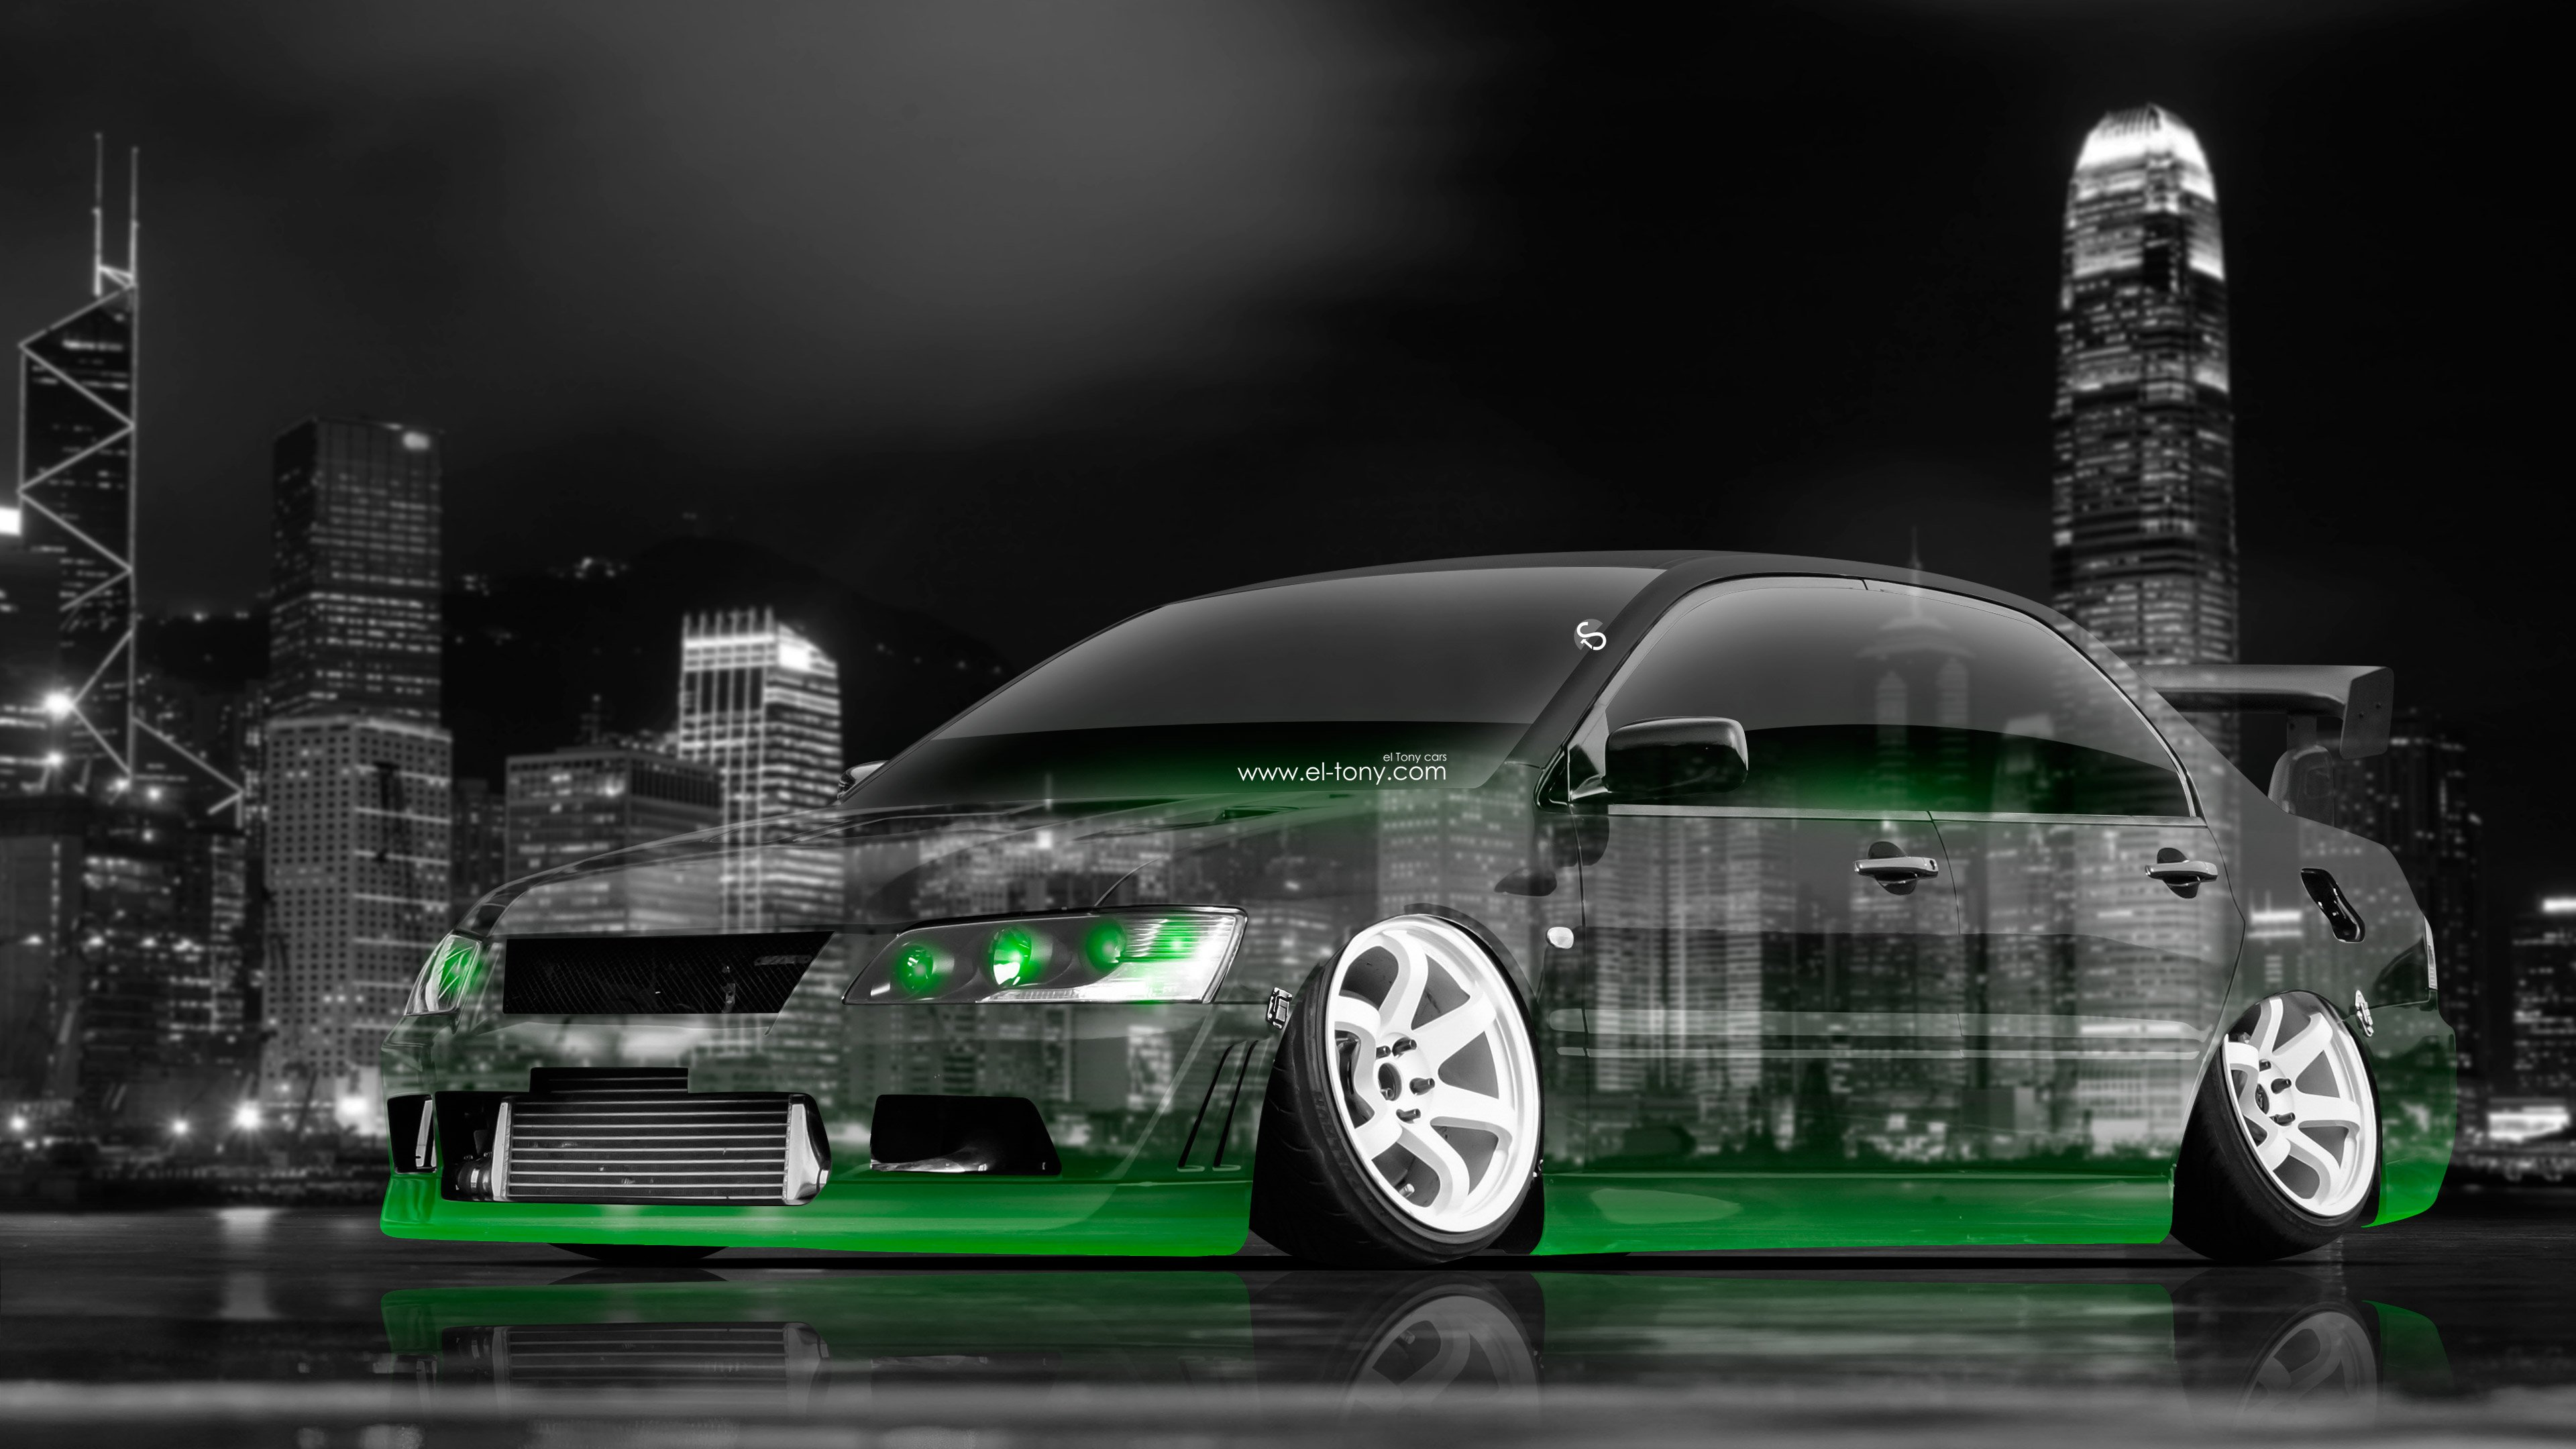 3840x2160 4k Mitsubishi Lancer Evolution Jdm Tuning Crystal City Car 2015  4k .